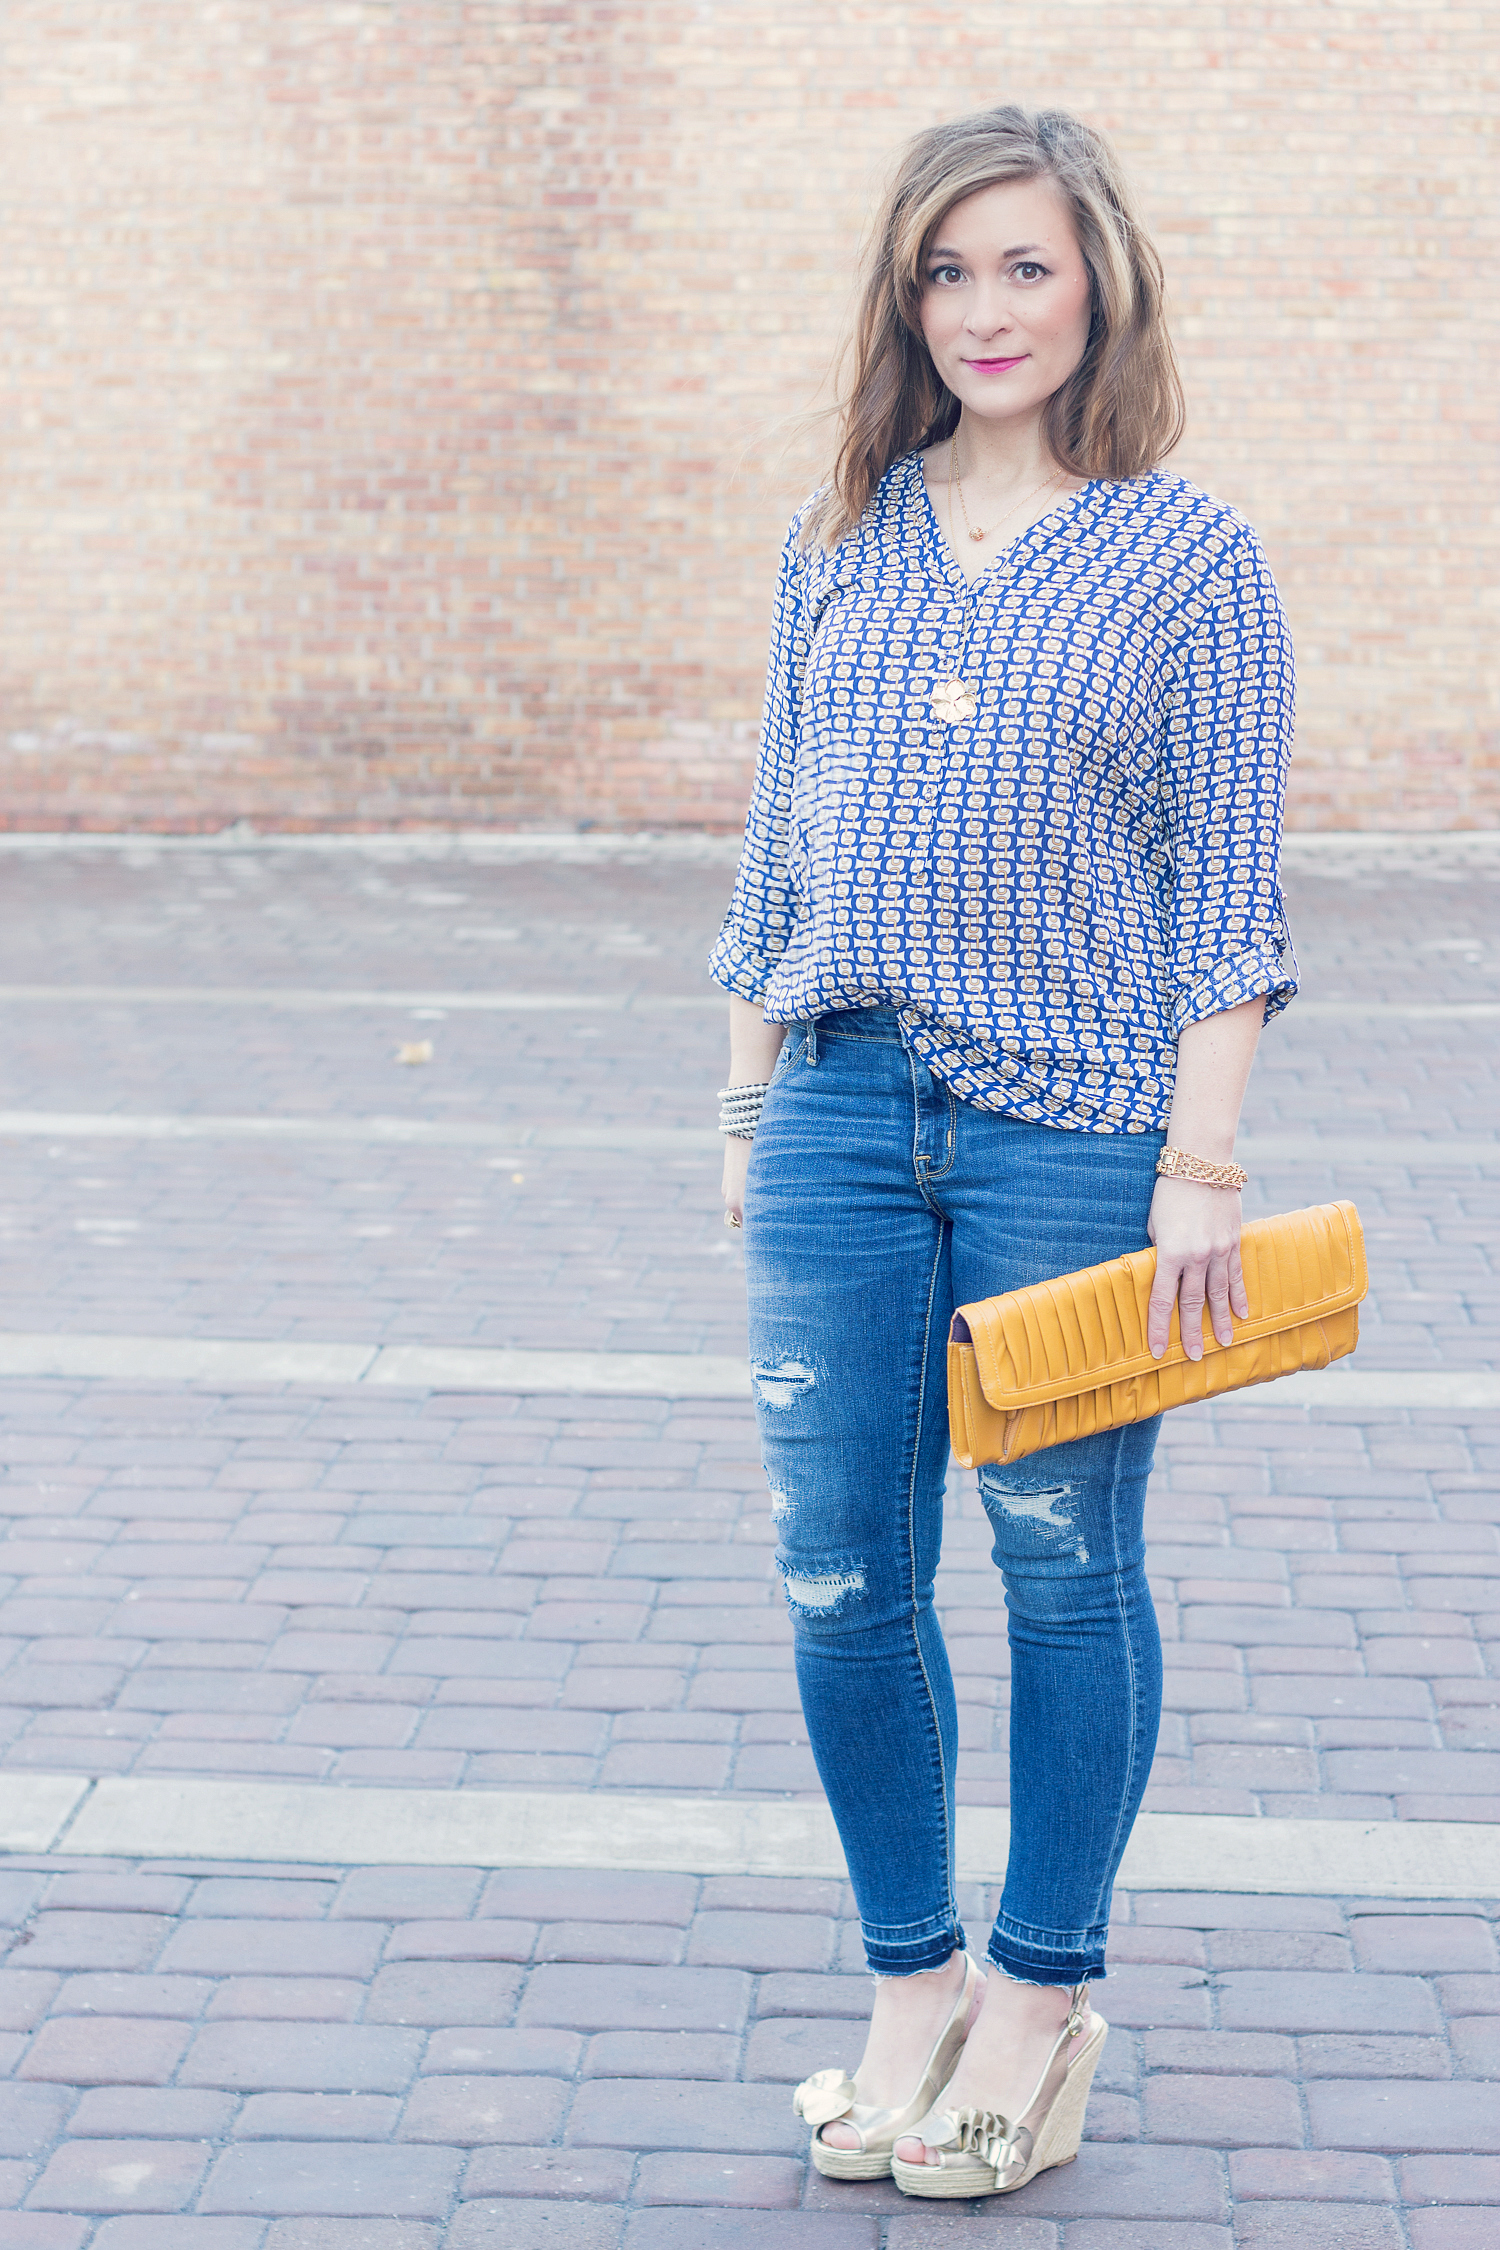 Cute spring look for women